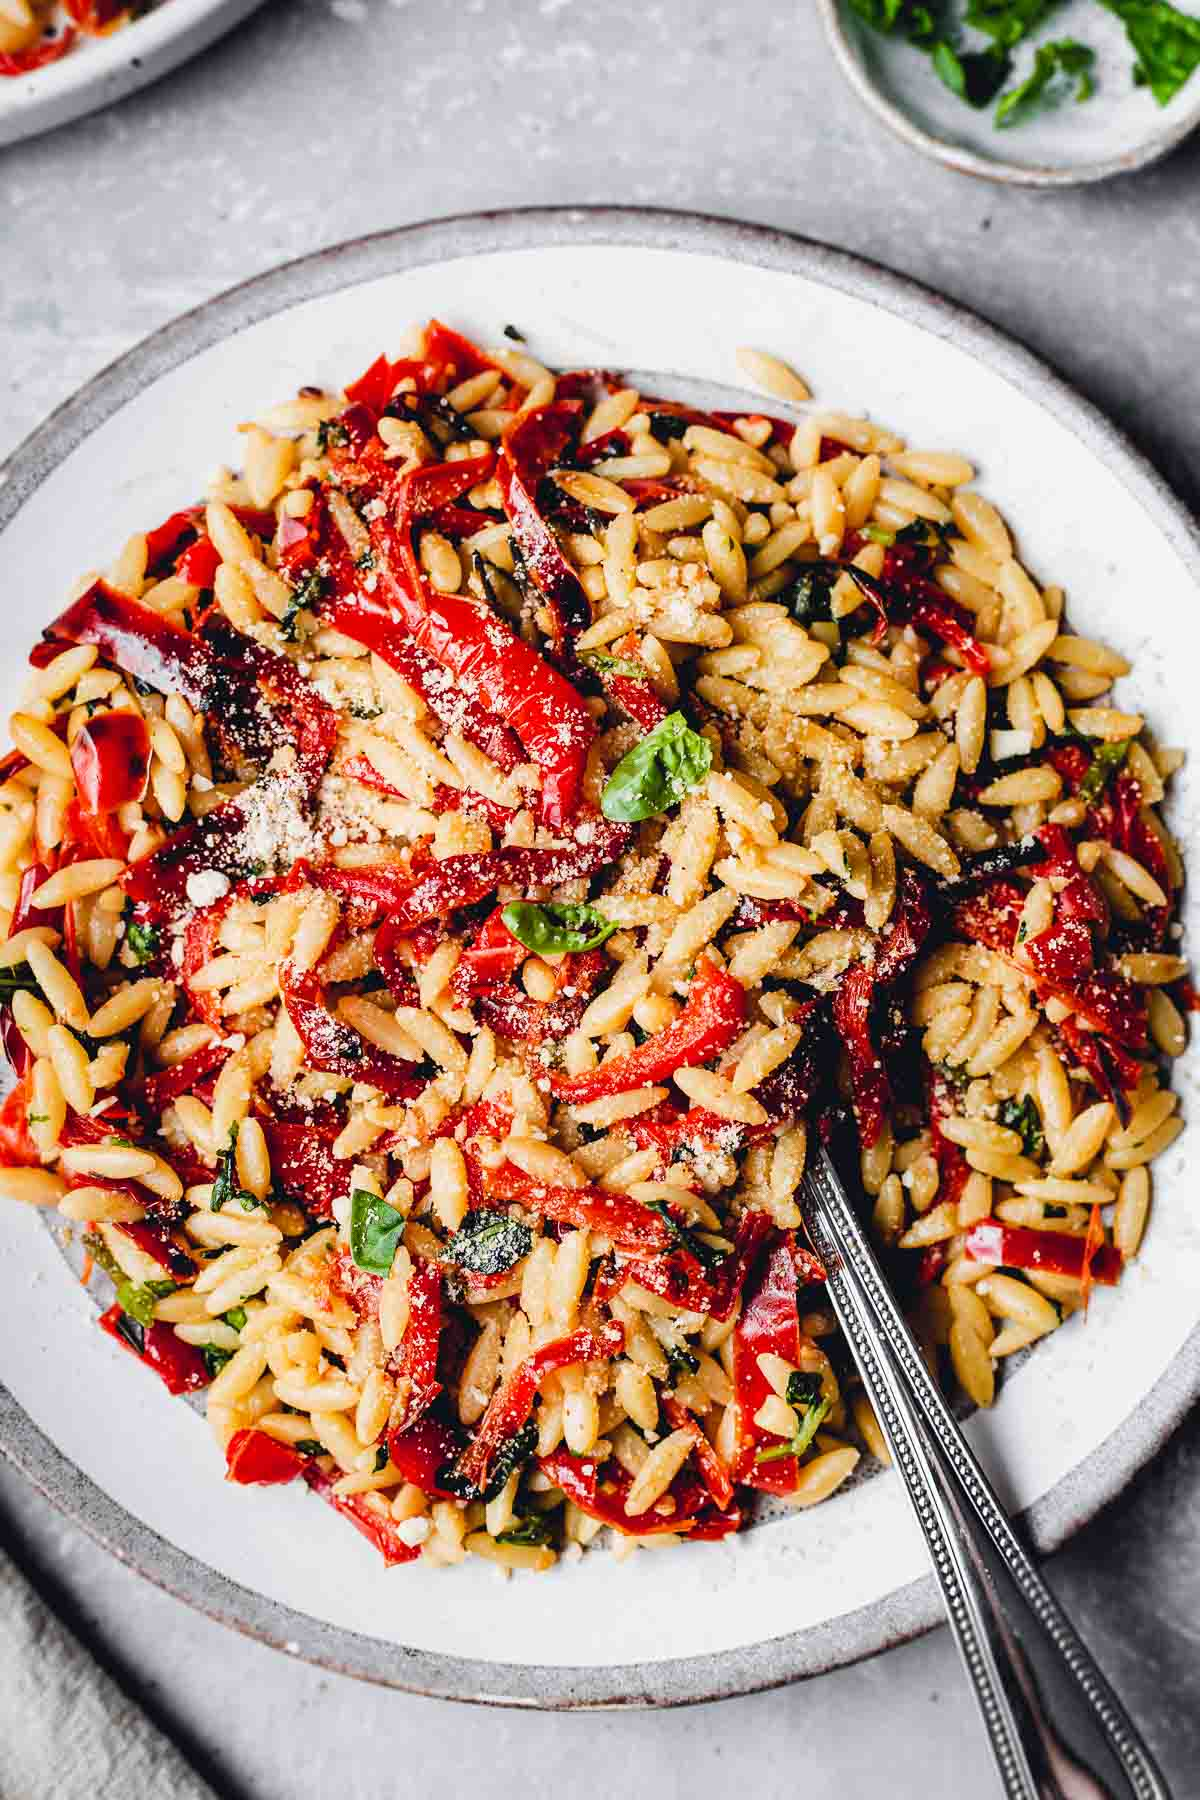 A close-up shot of vegan orzo pasta on a plate.